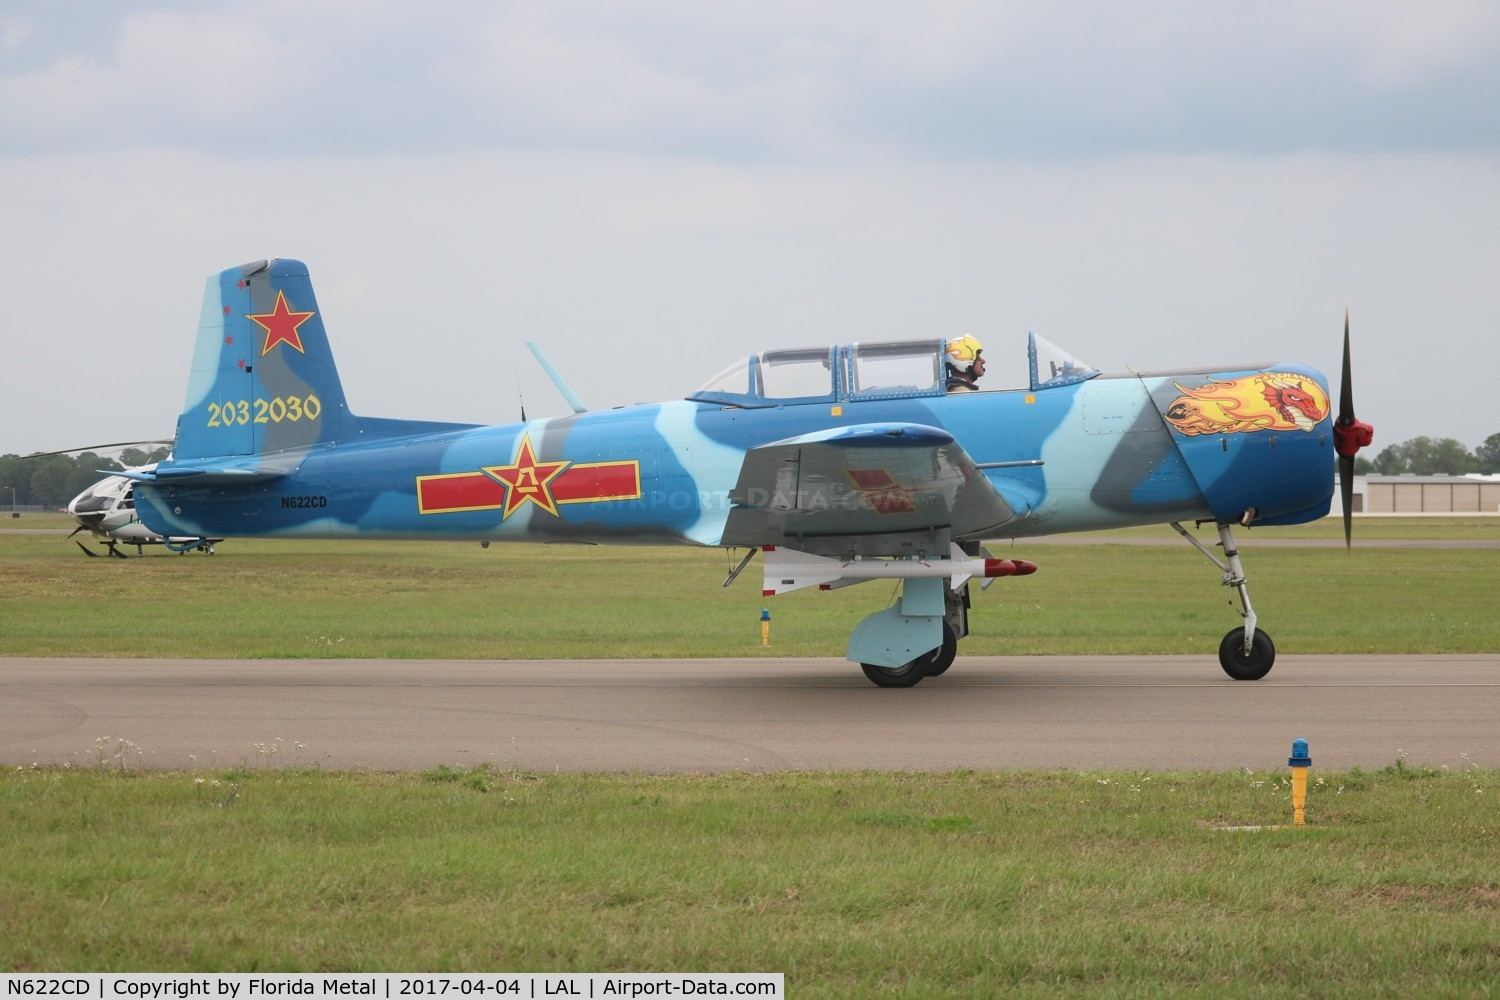 N622CD, 1977 Nanchang CJ-6A C/N 2032030, CJ-6A